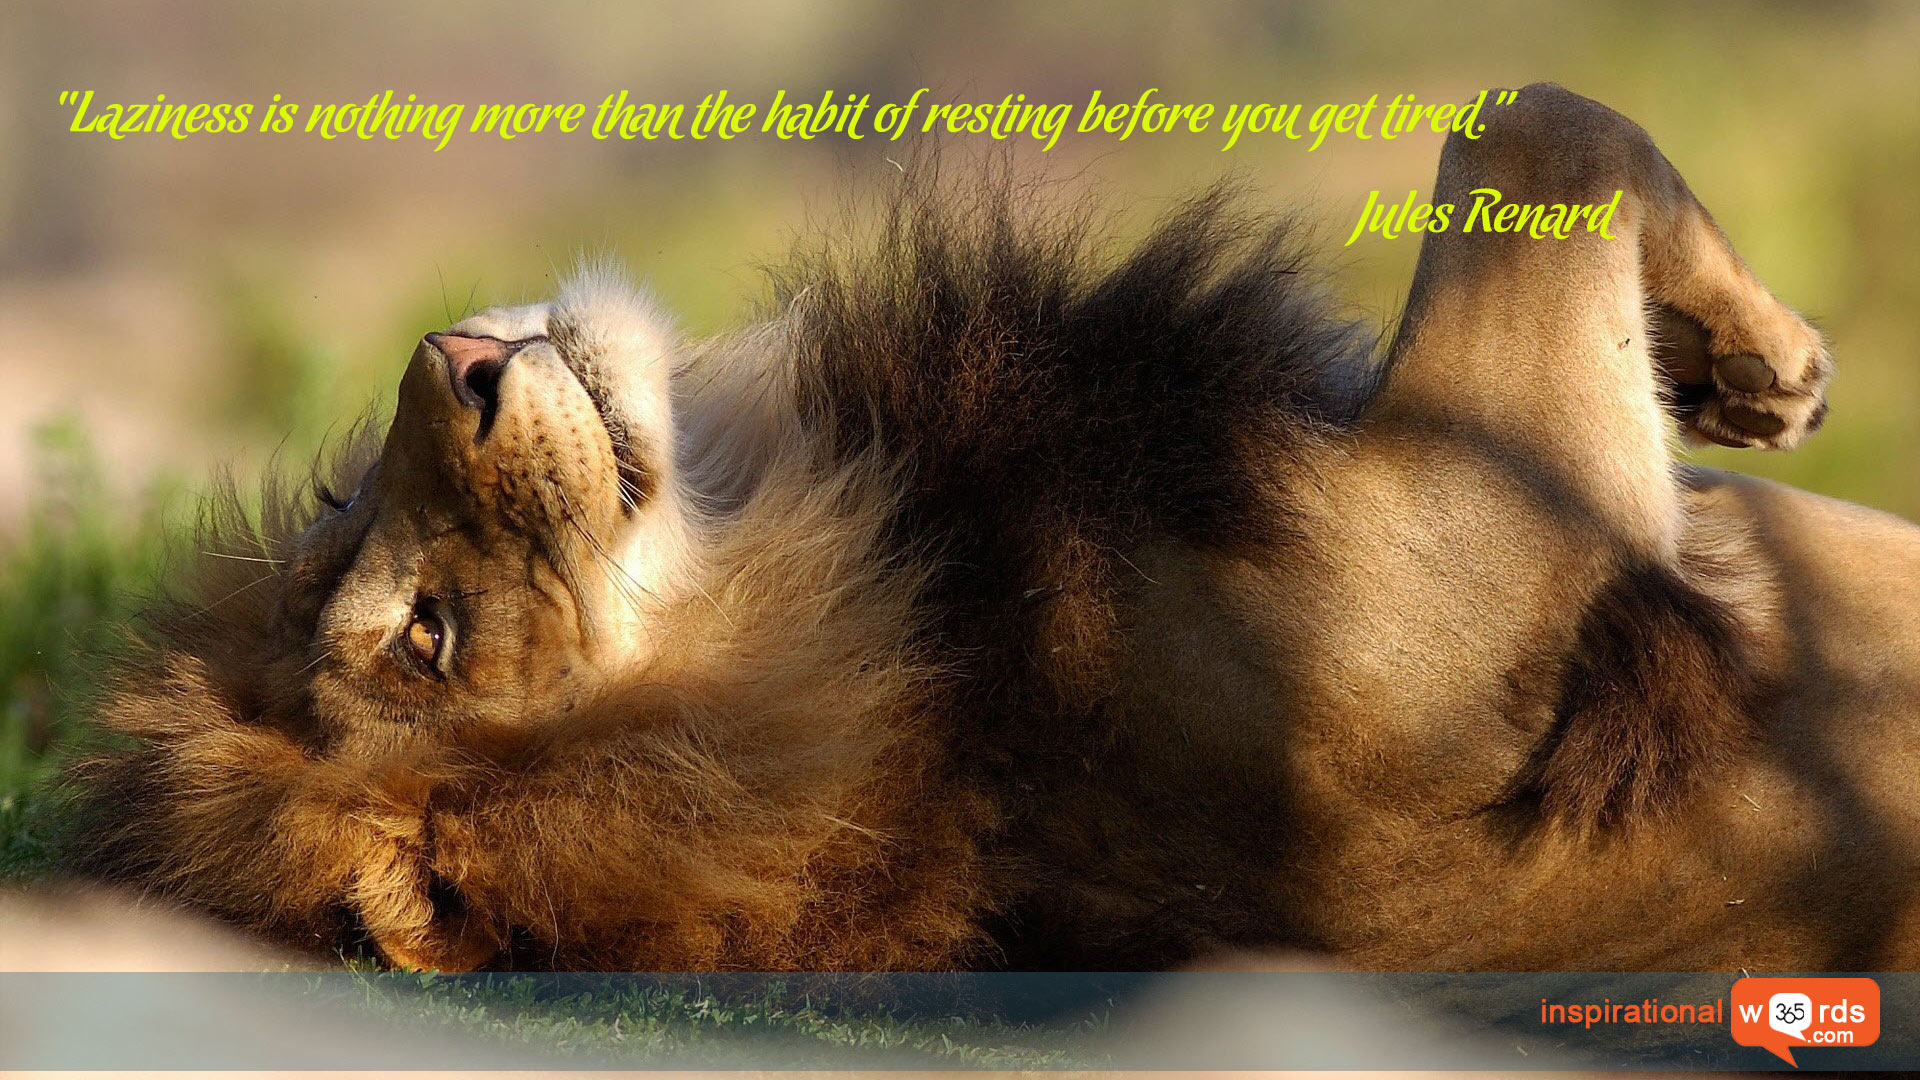 Inspirational Wallpaper Quote by Jules Renard